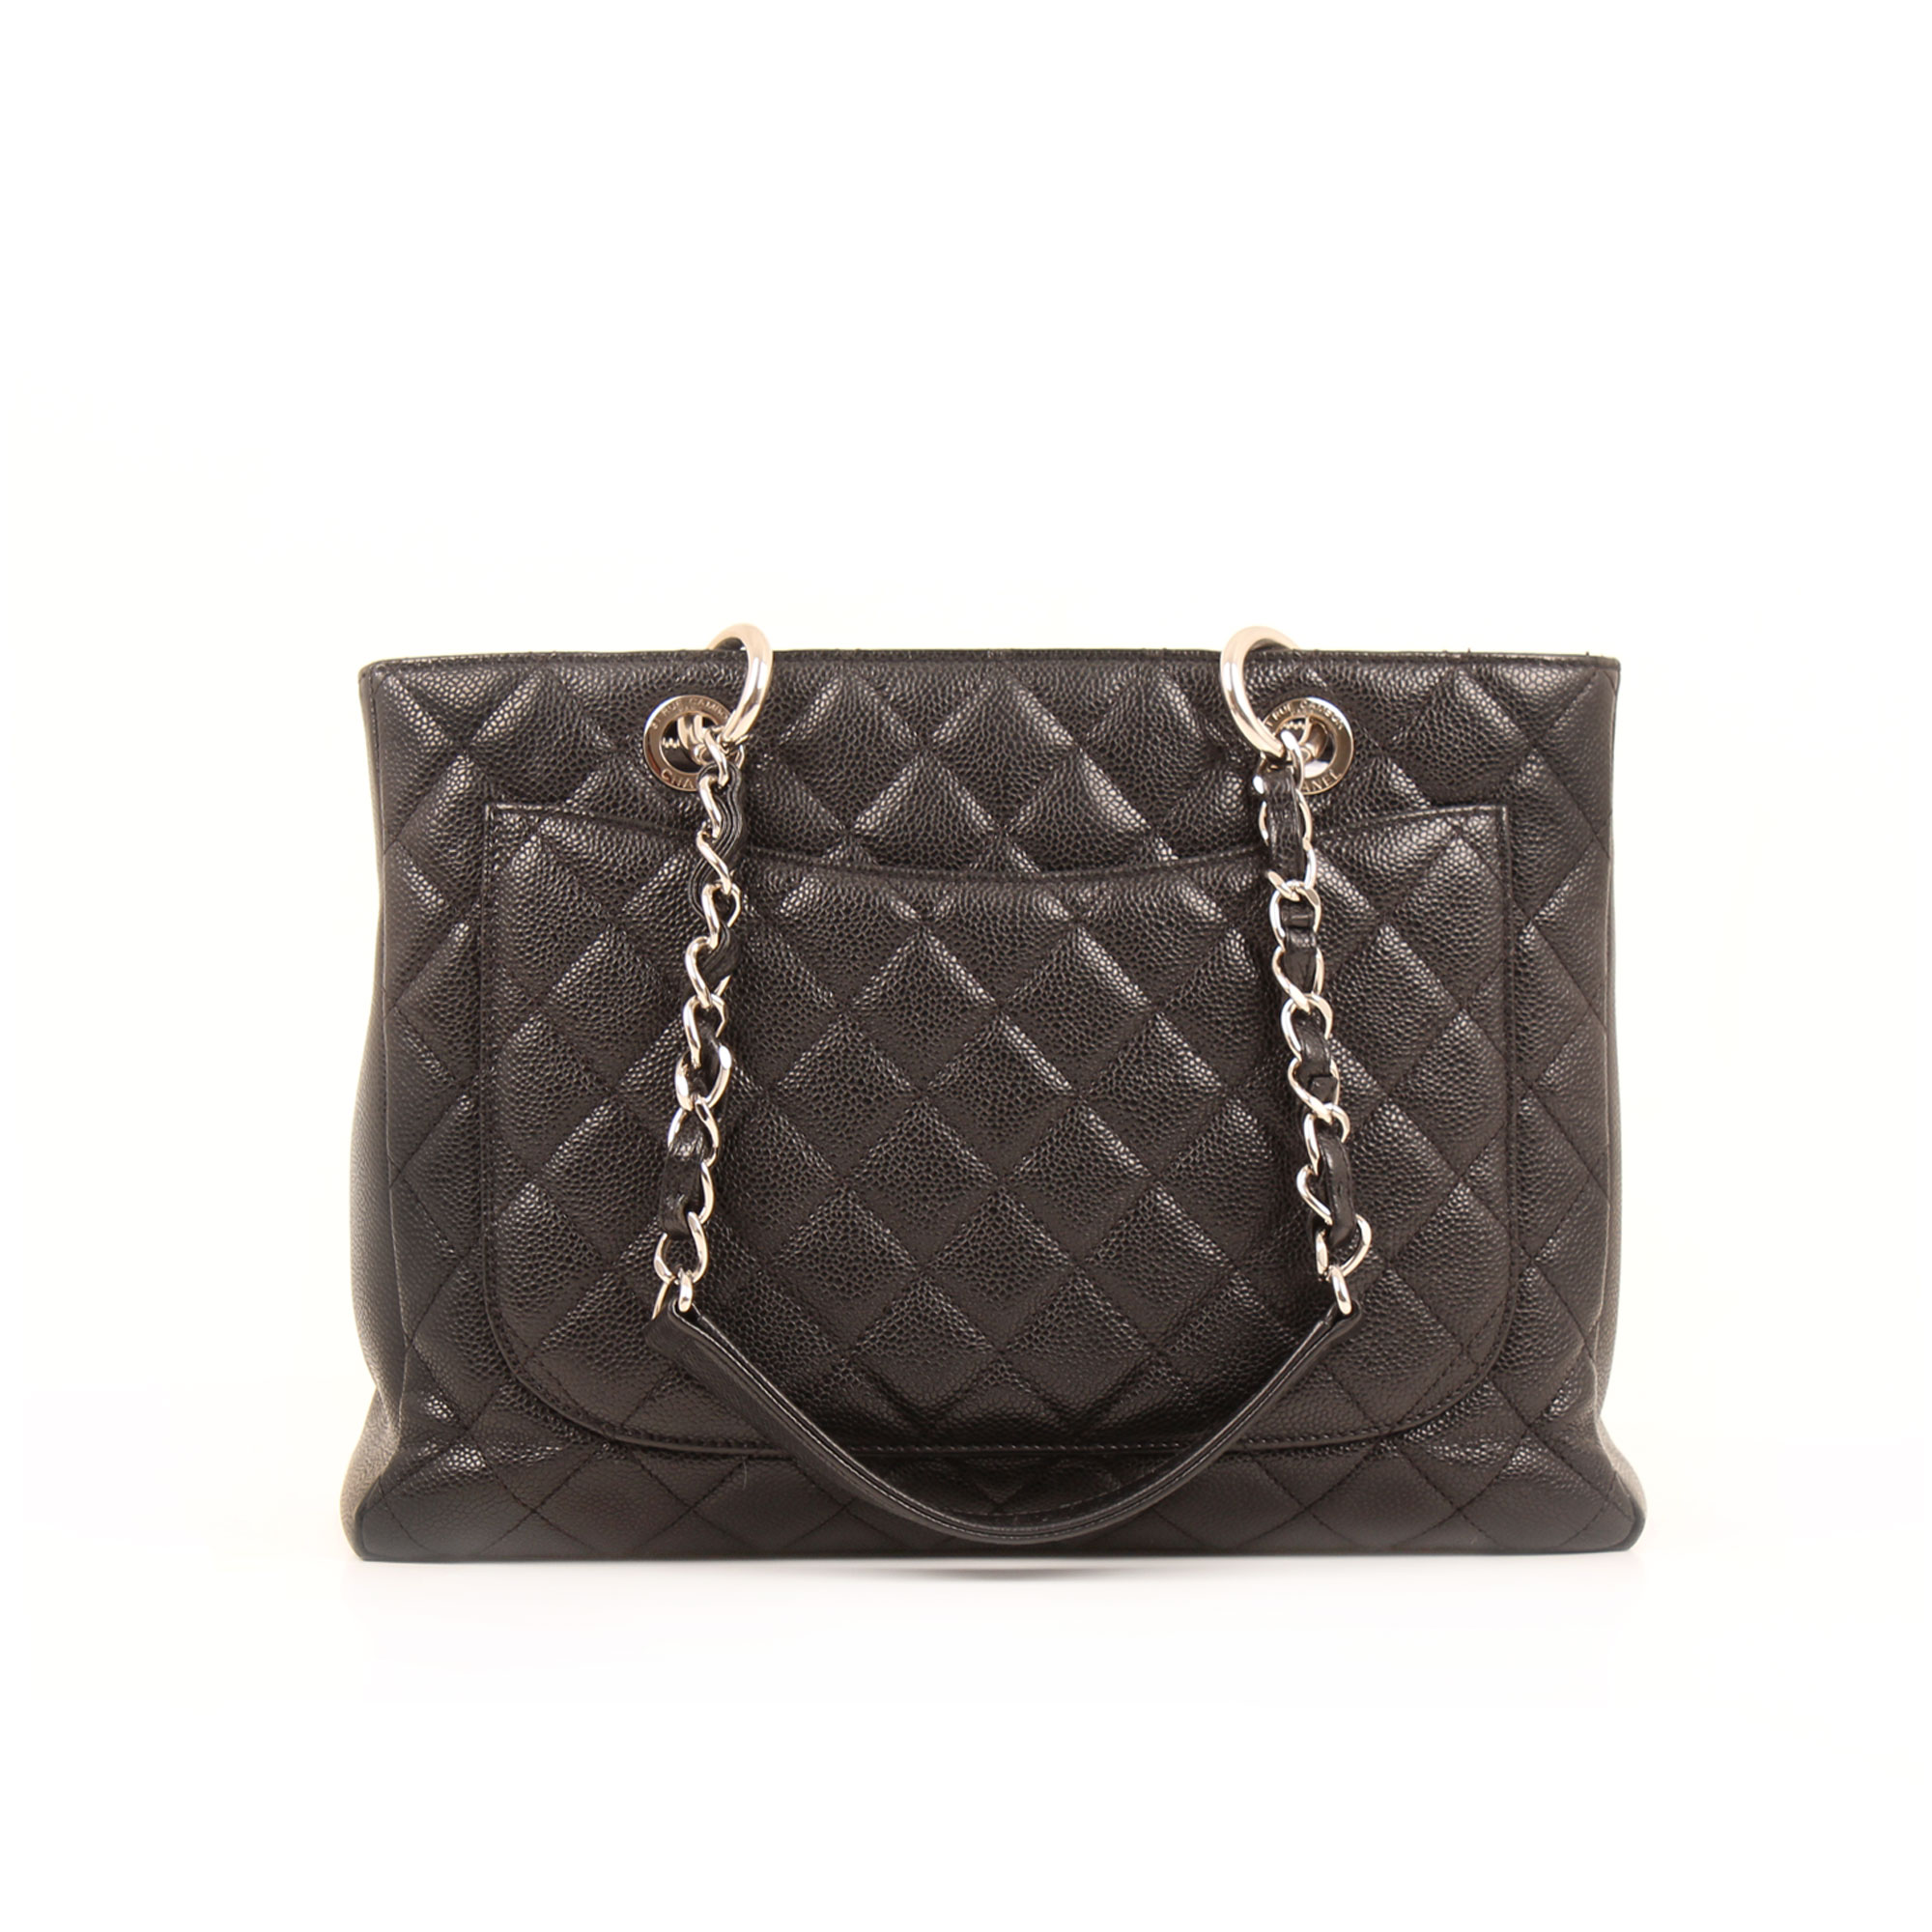 Back image of chanel grand shopping tote bag black caviar leather